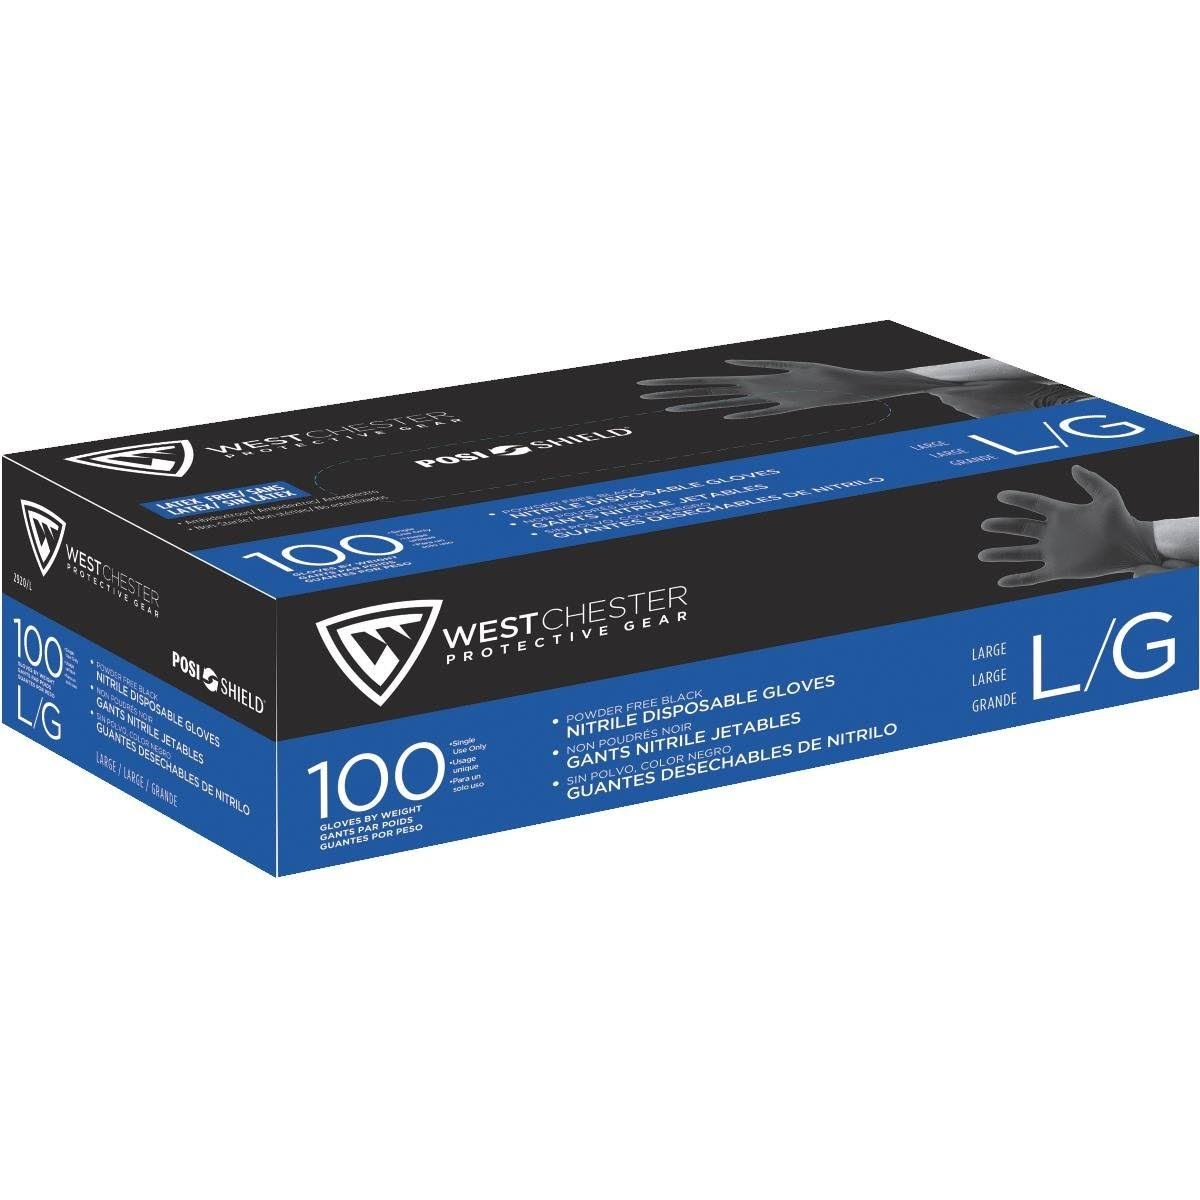 West Chester 2920/l Nitrile Powder Disposable Gloves - Black, Large